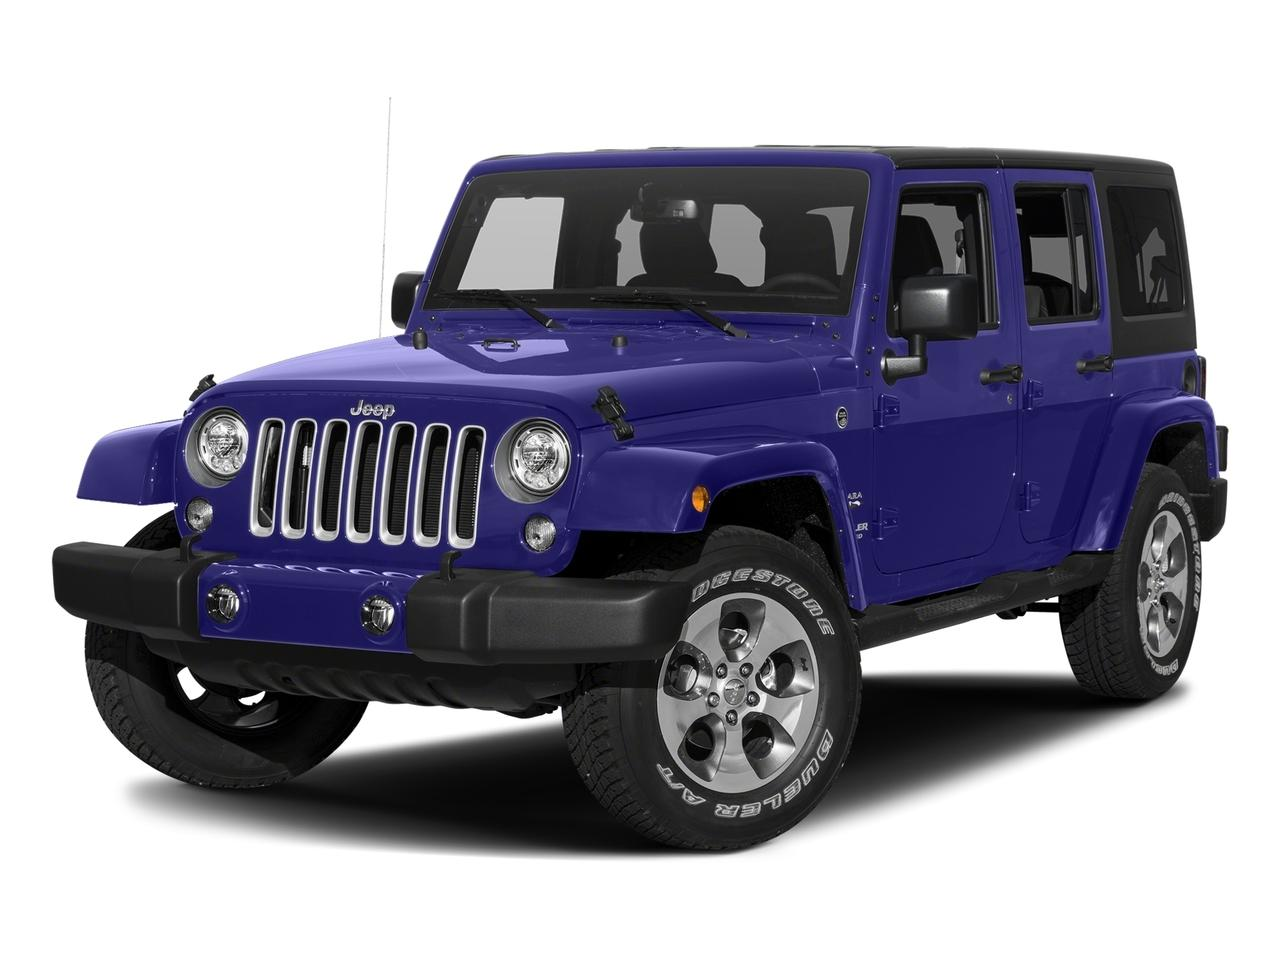 2017 Jeep Wrangler Unlimited Vehicle Photo in Peoria, IL 61615